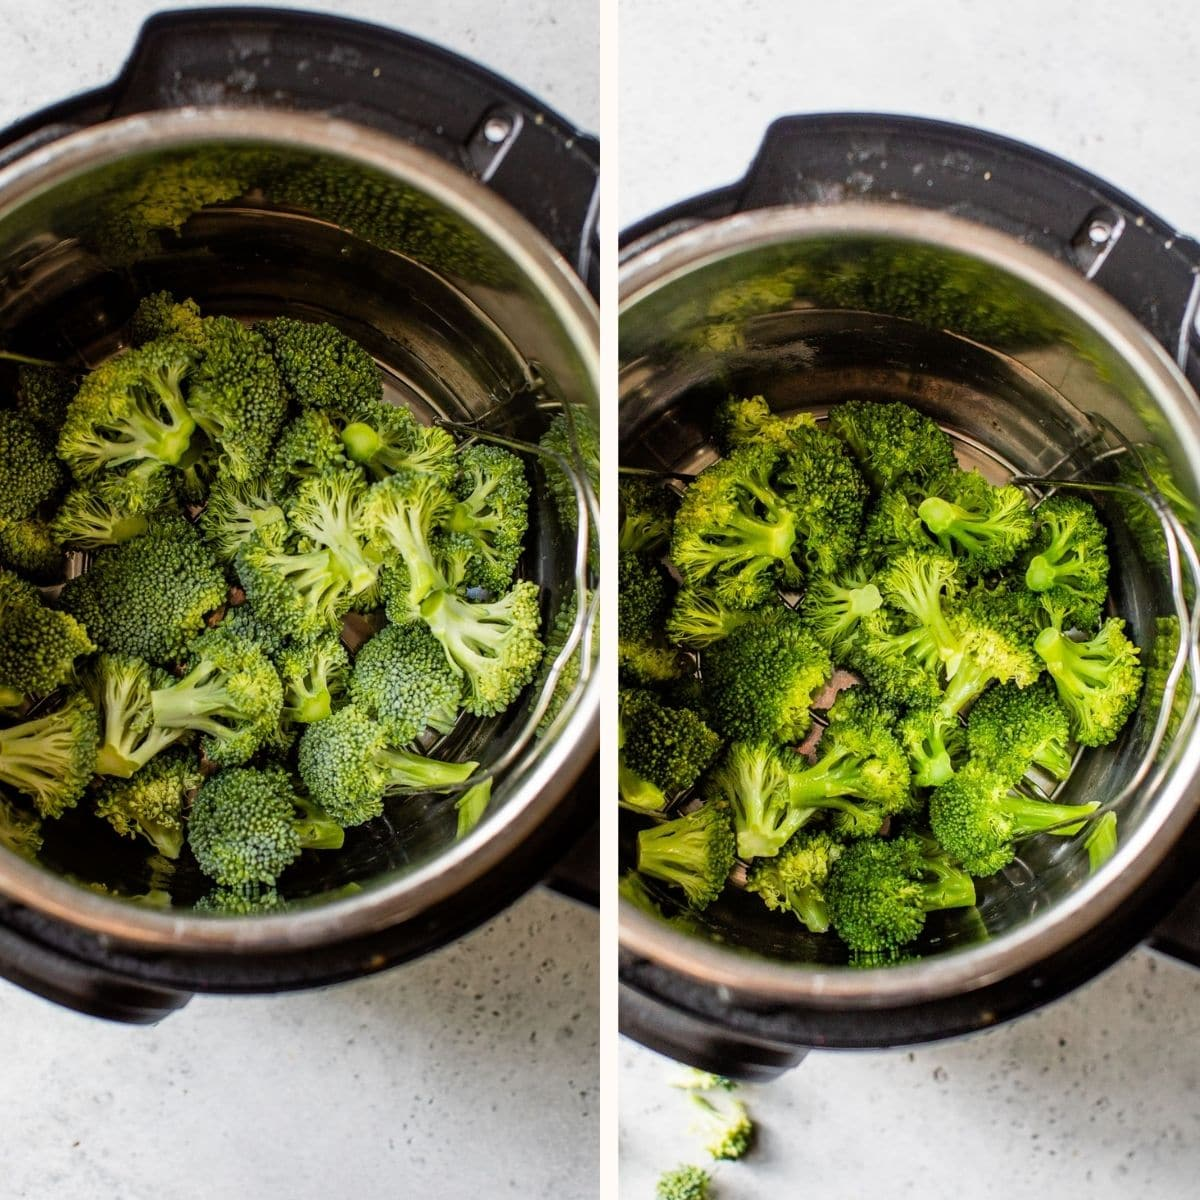 raw and cooked broccoli in a pressure cooker